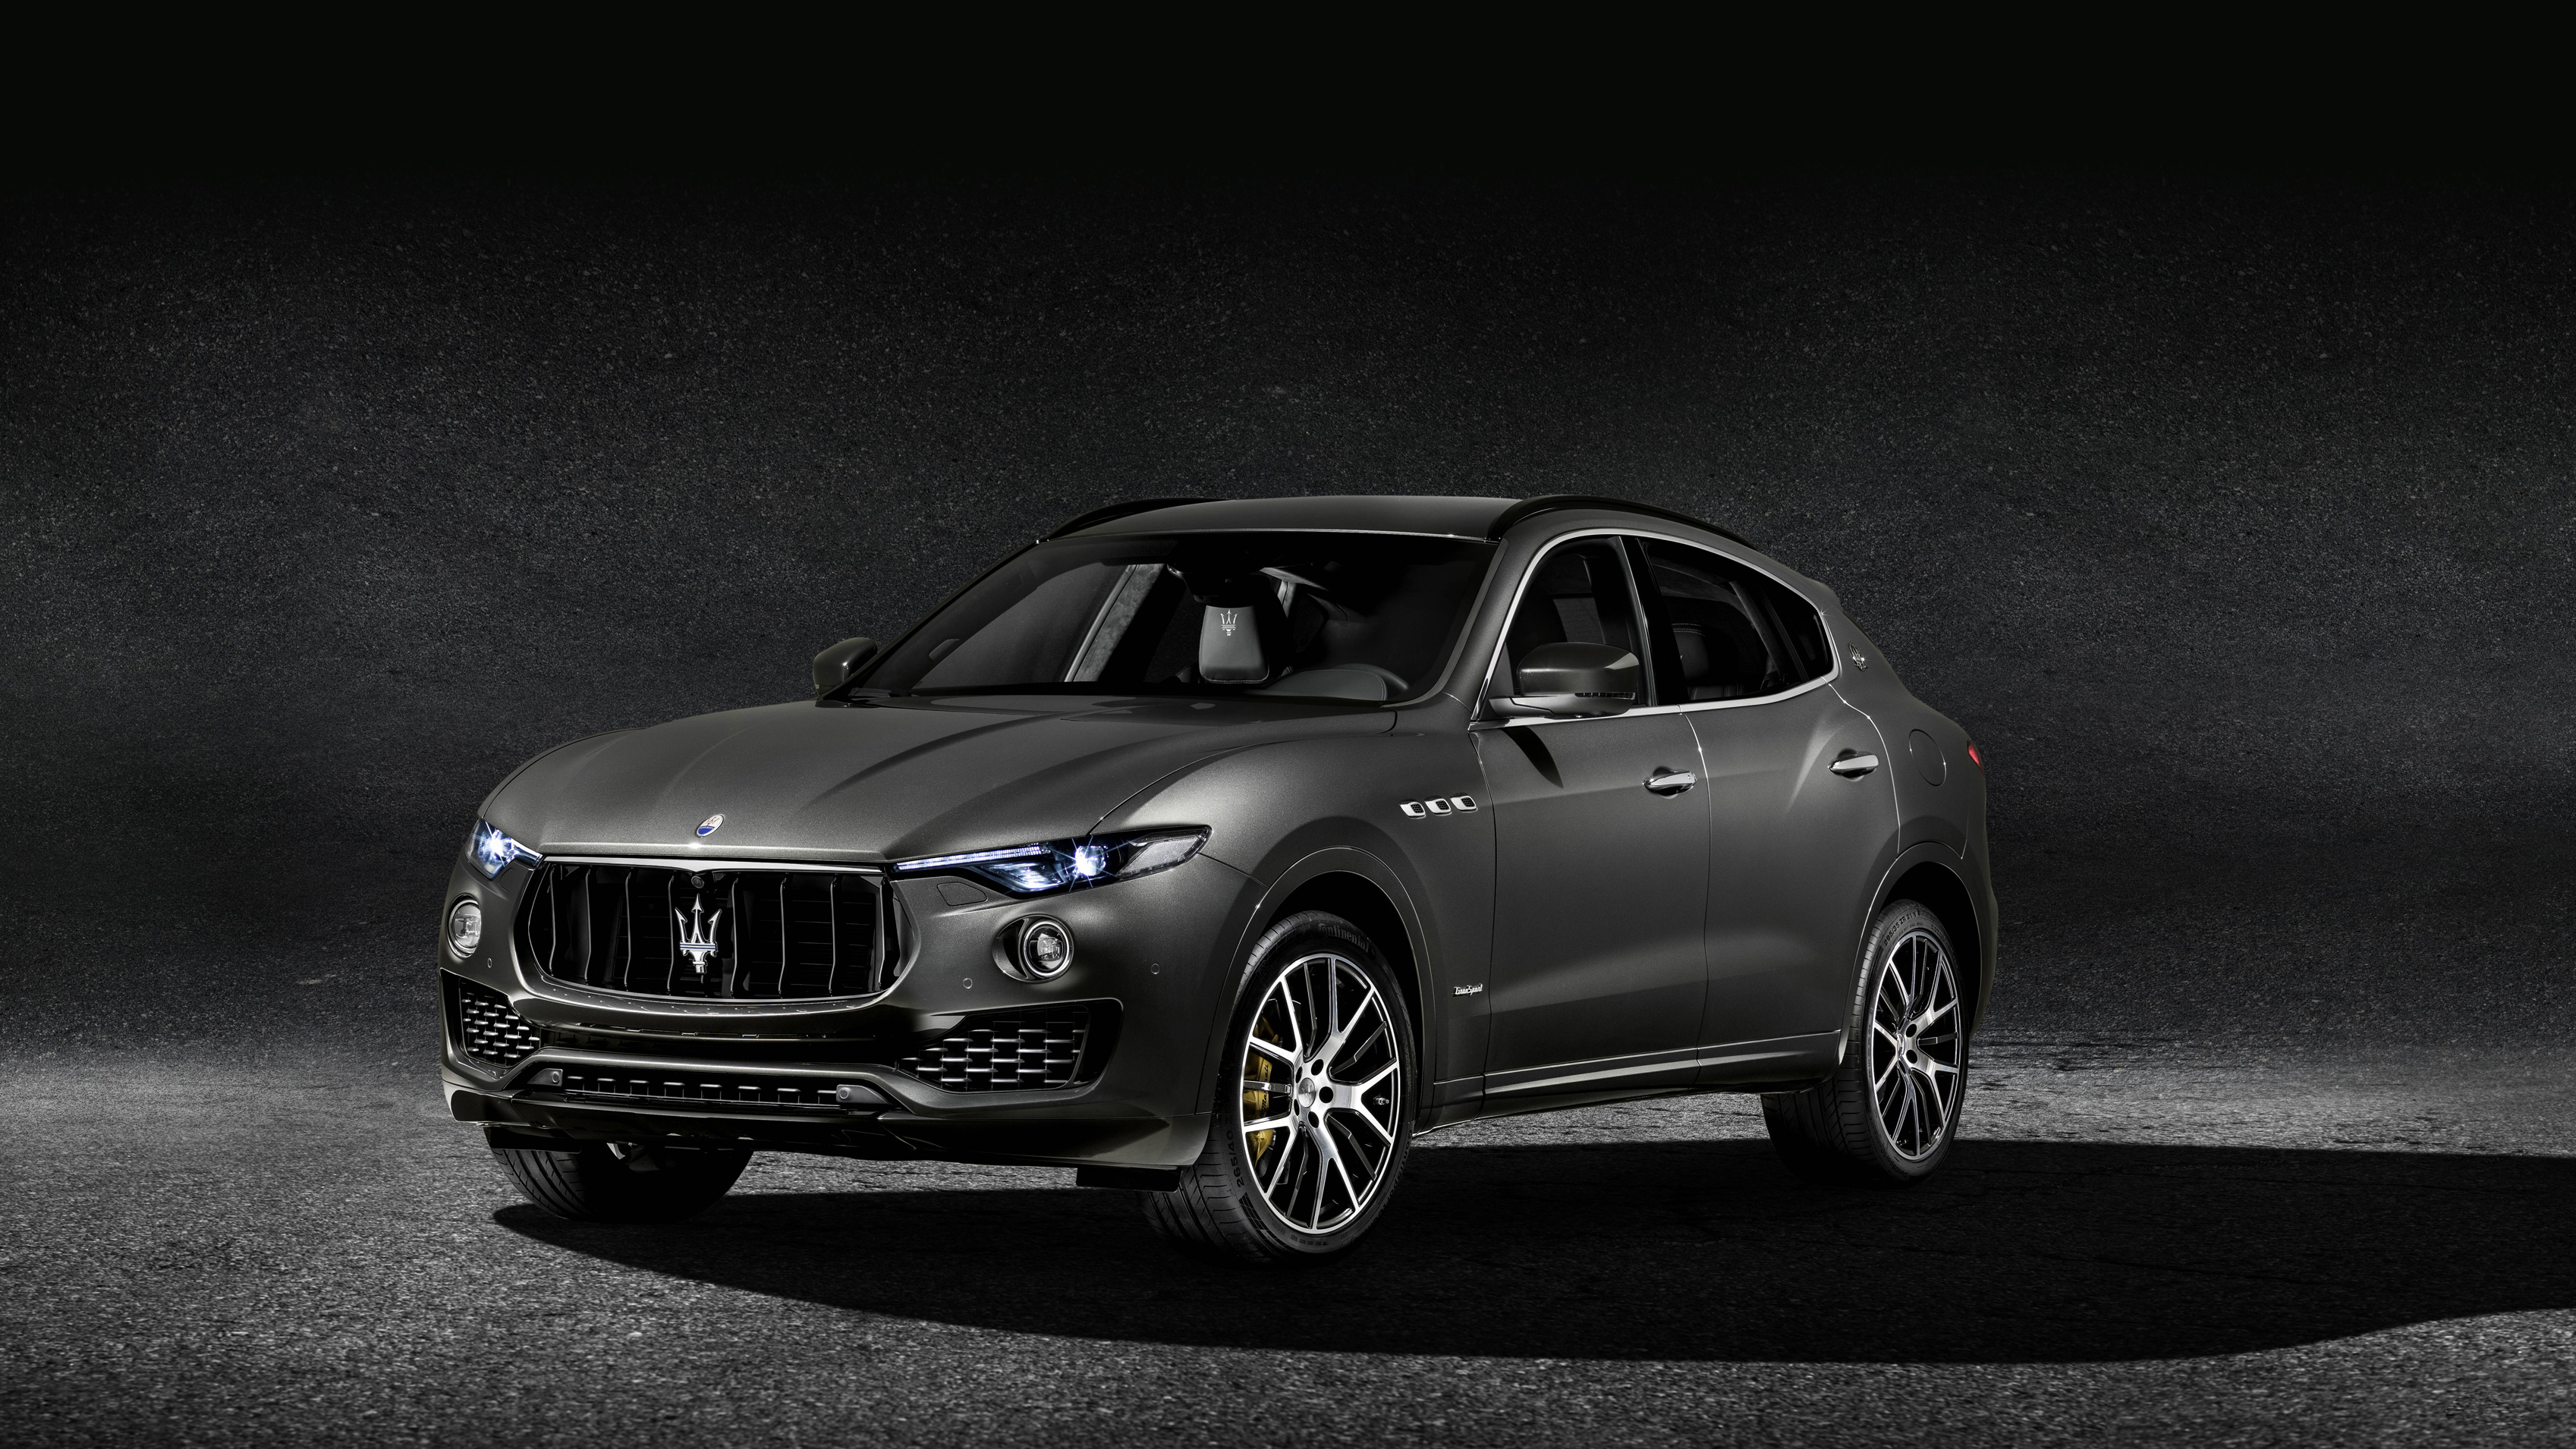 Maserati Levante Wallpapers and Background Images   stmednet 3395x1910